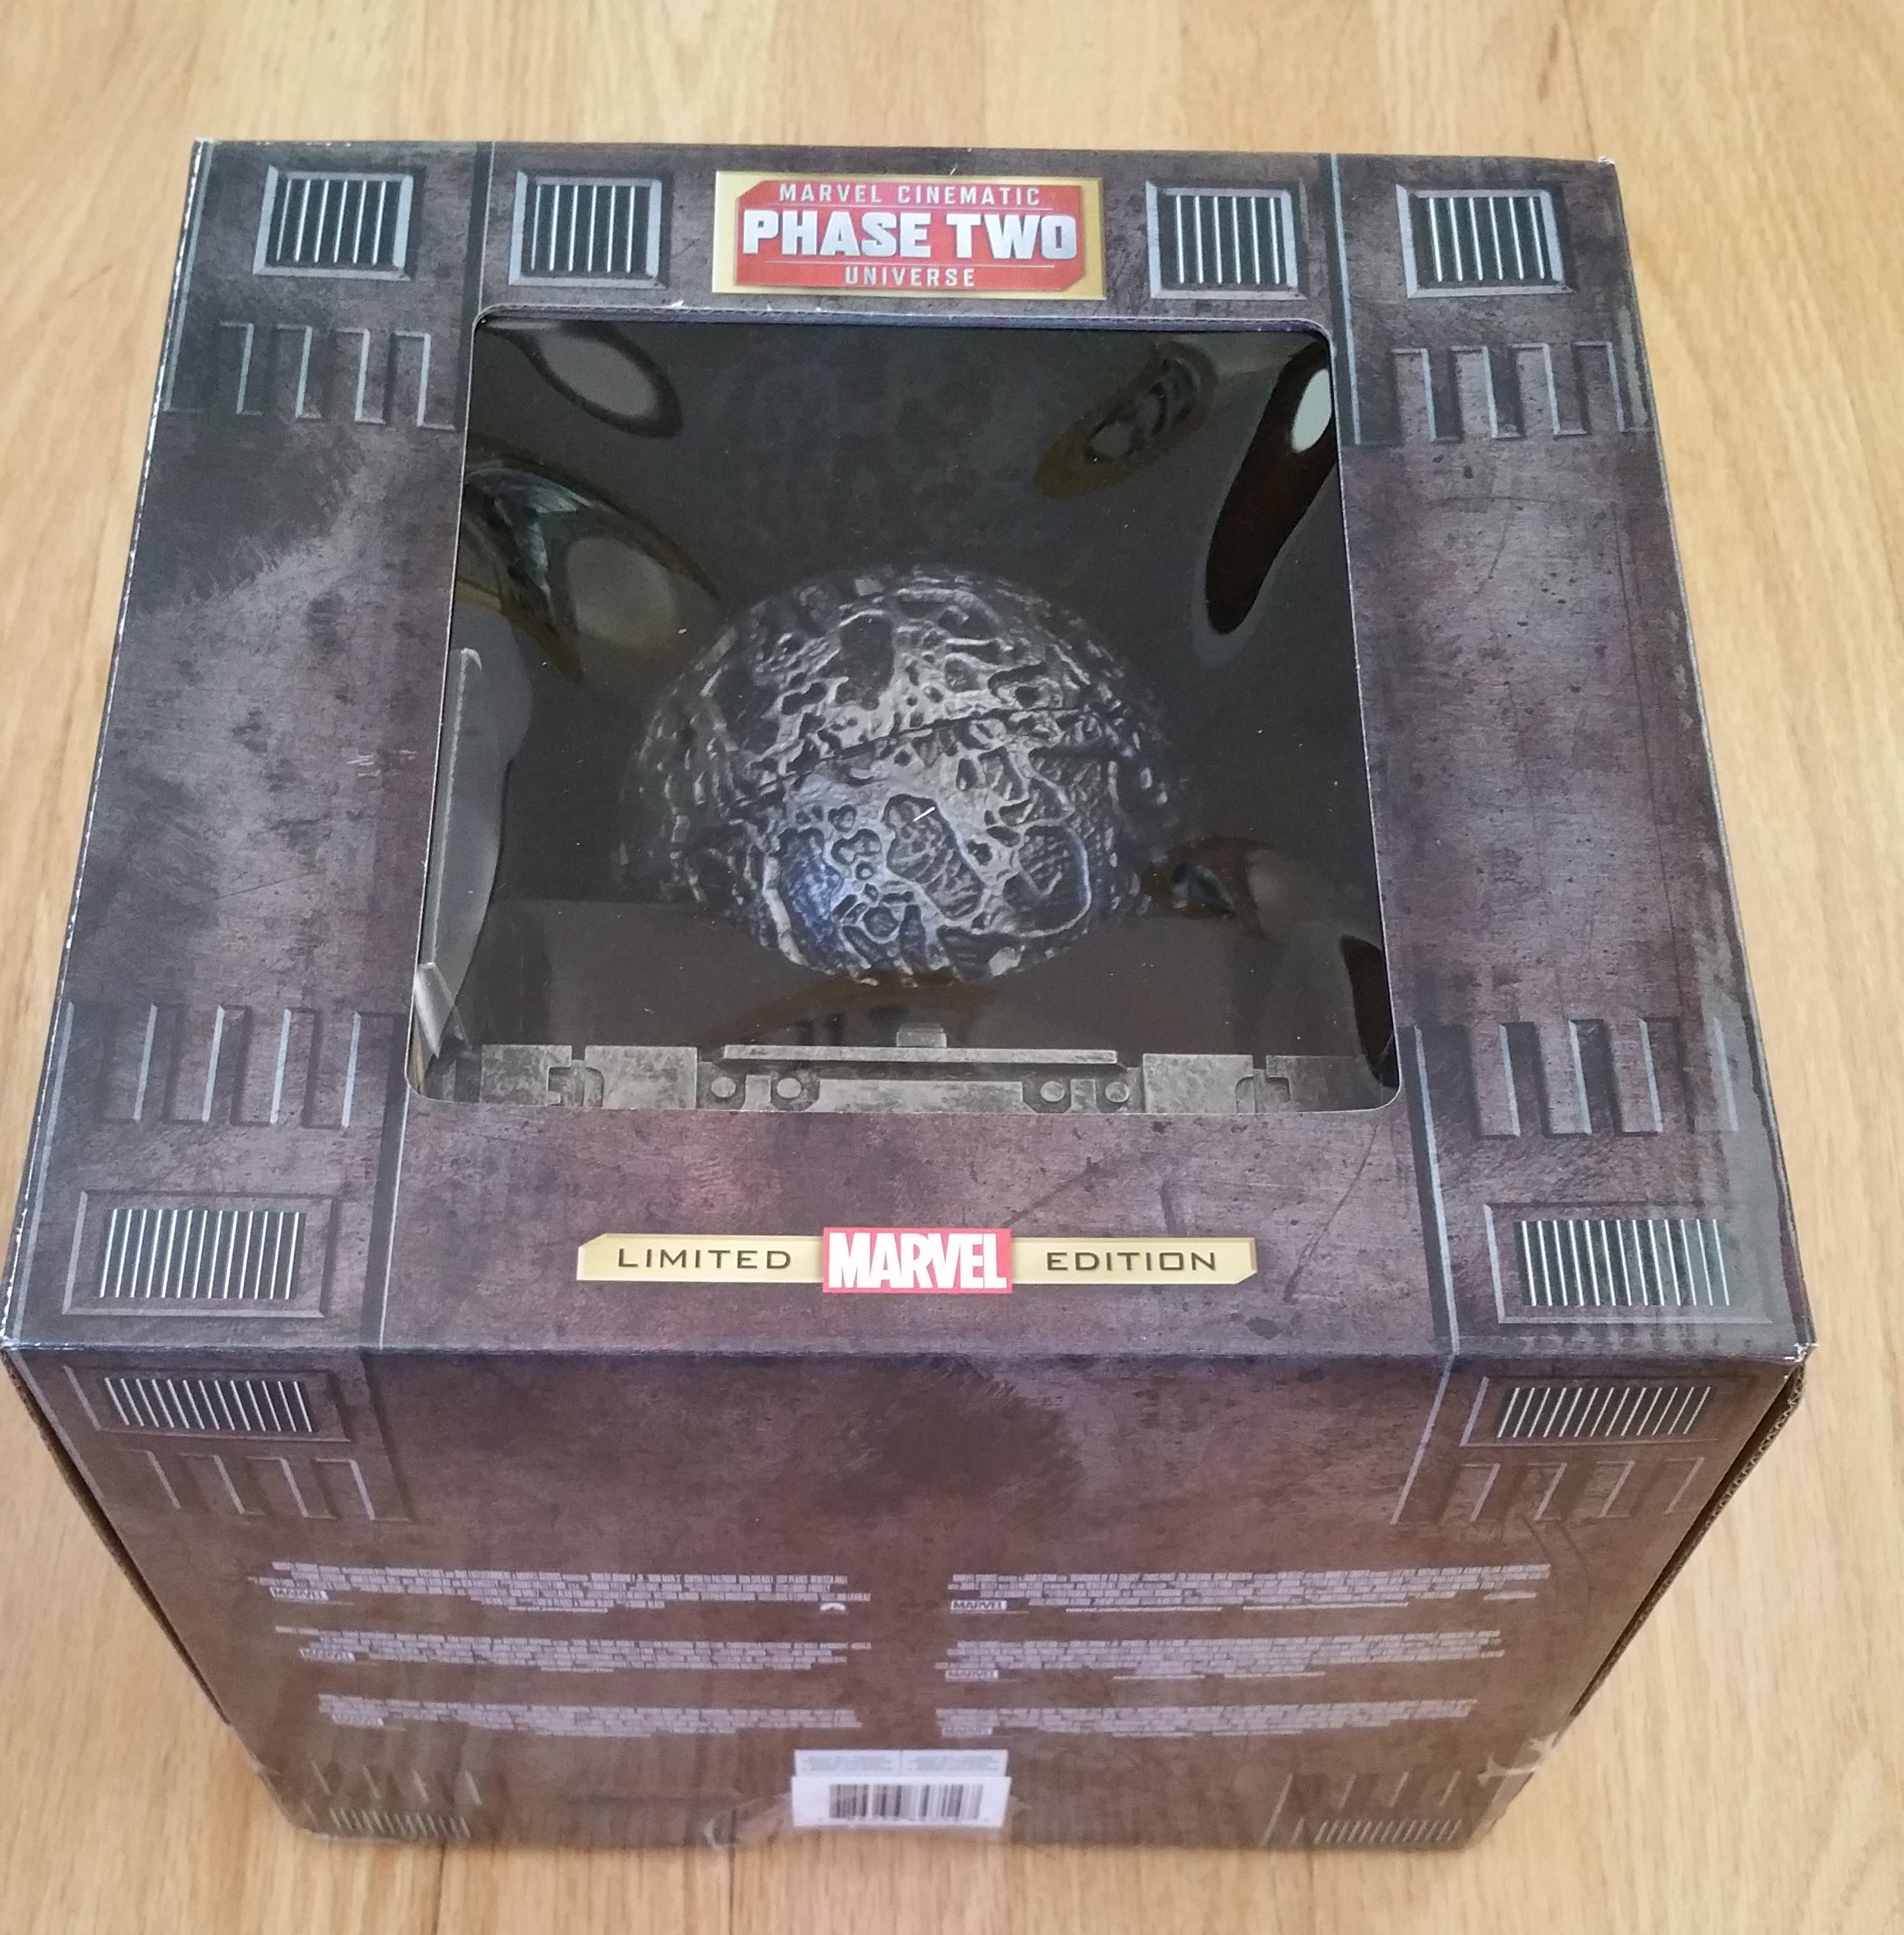 Marvel phase two blu ray box set images and details collider